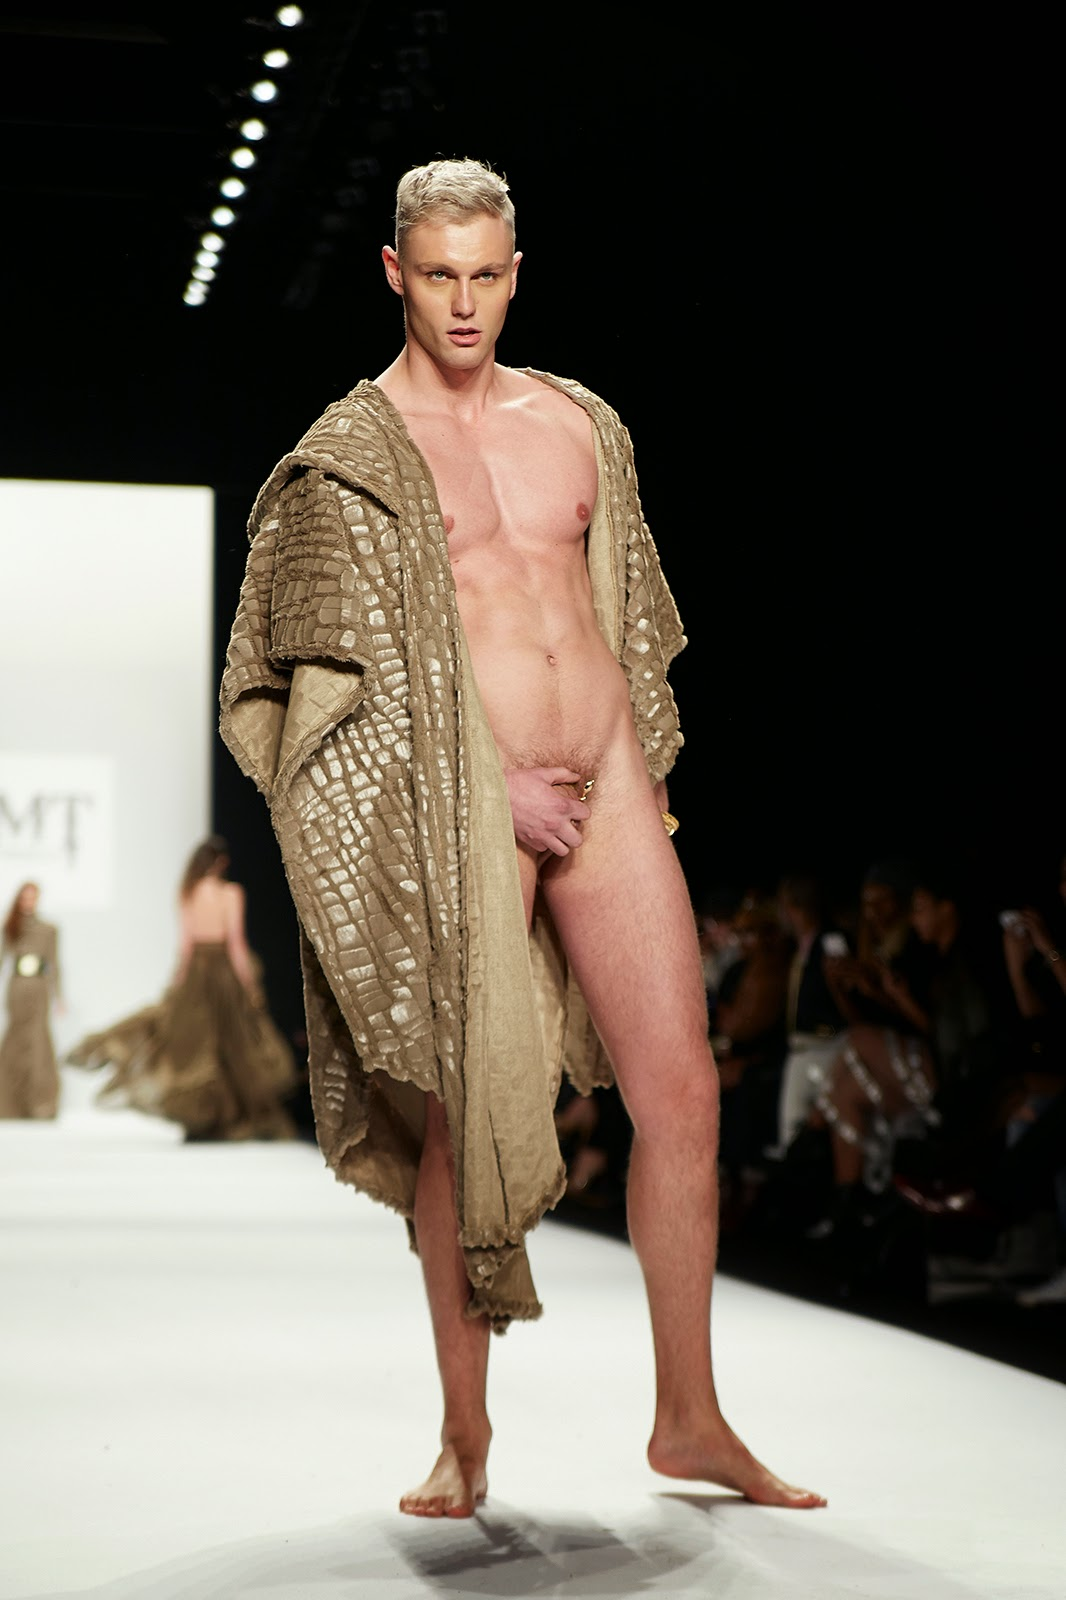 Naked Fashion Male Models